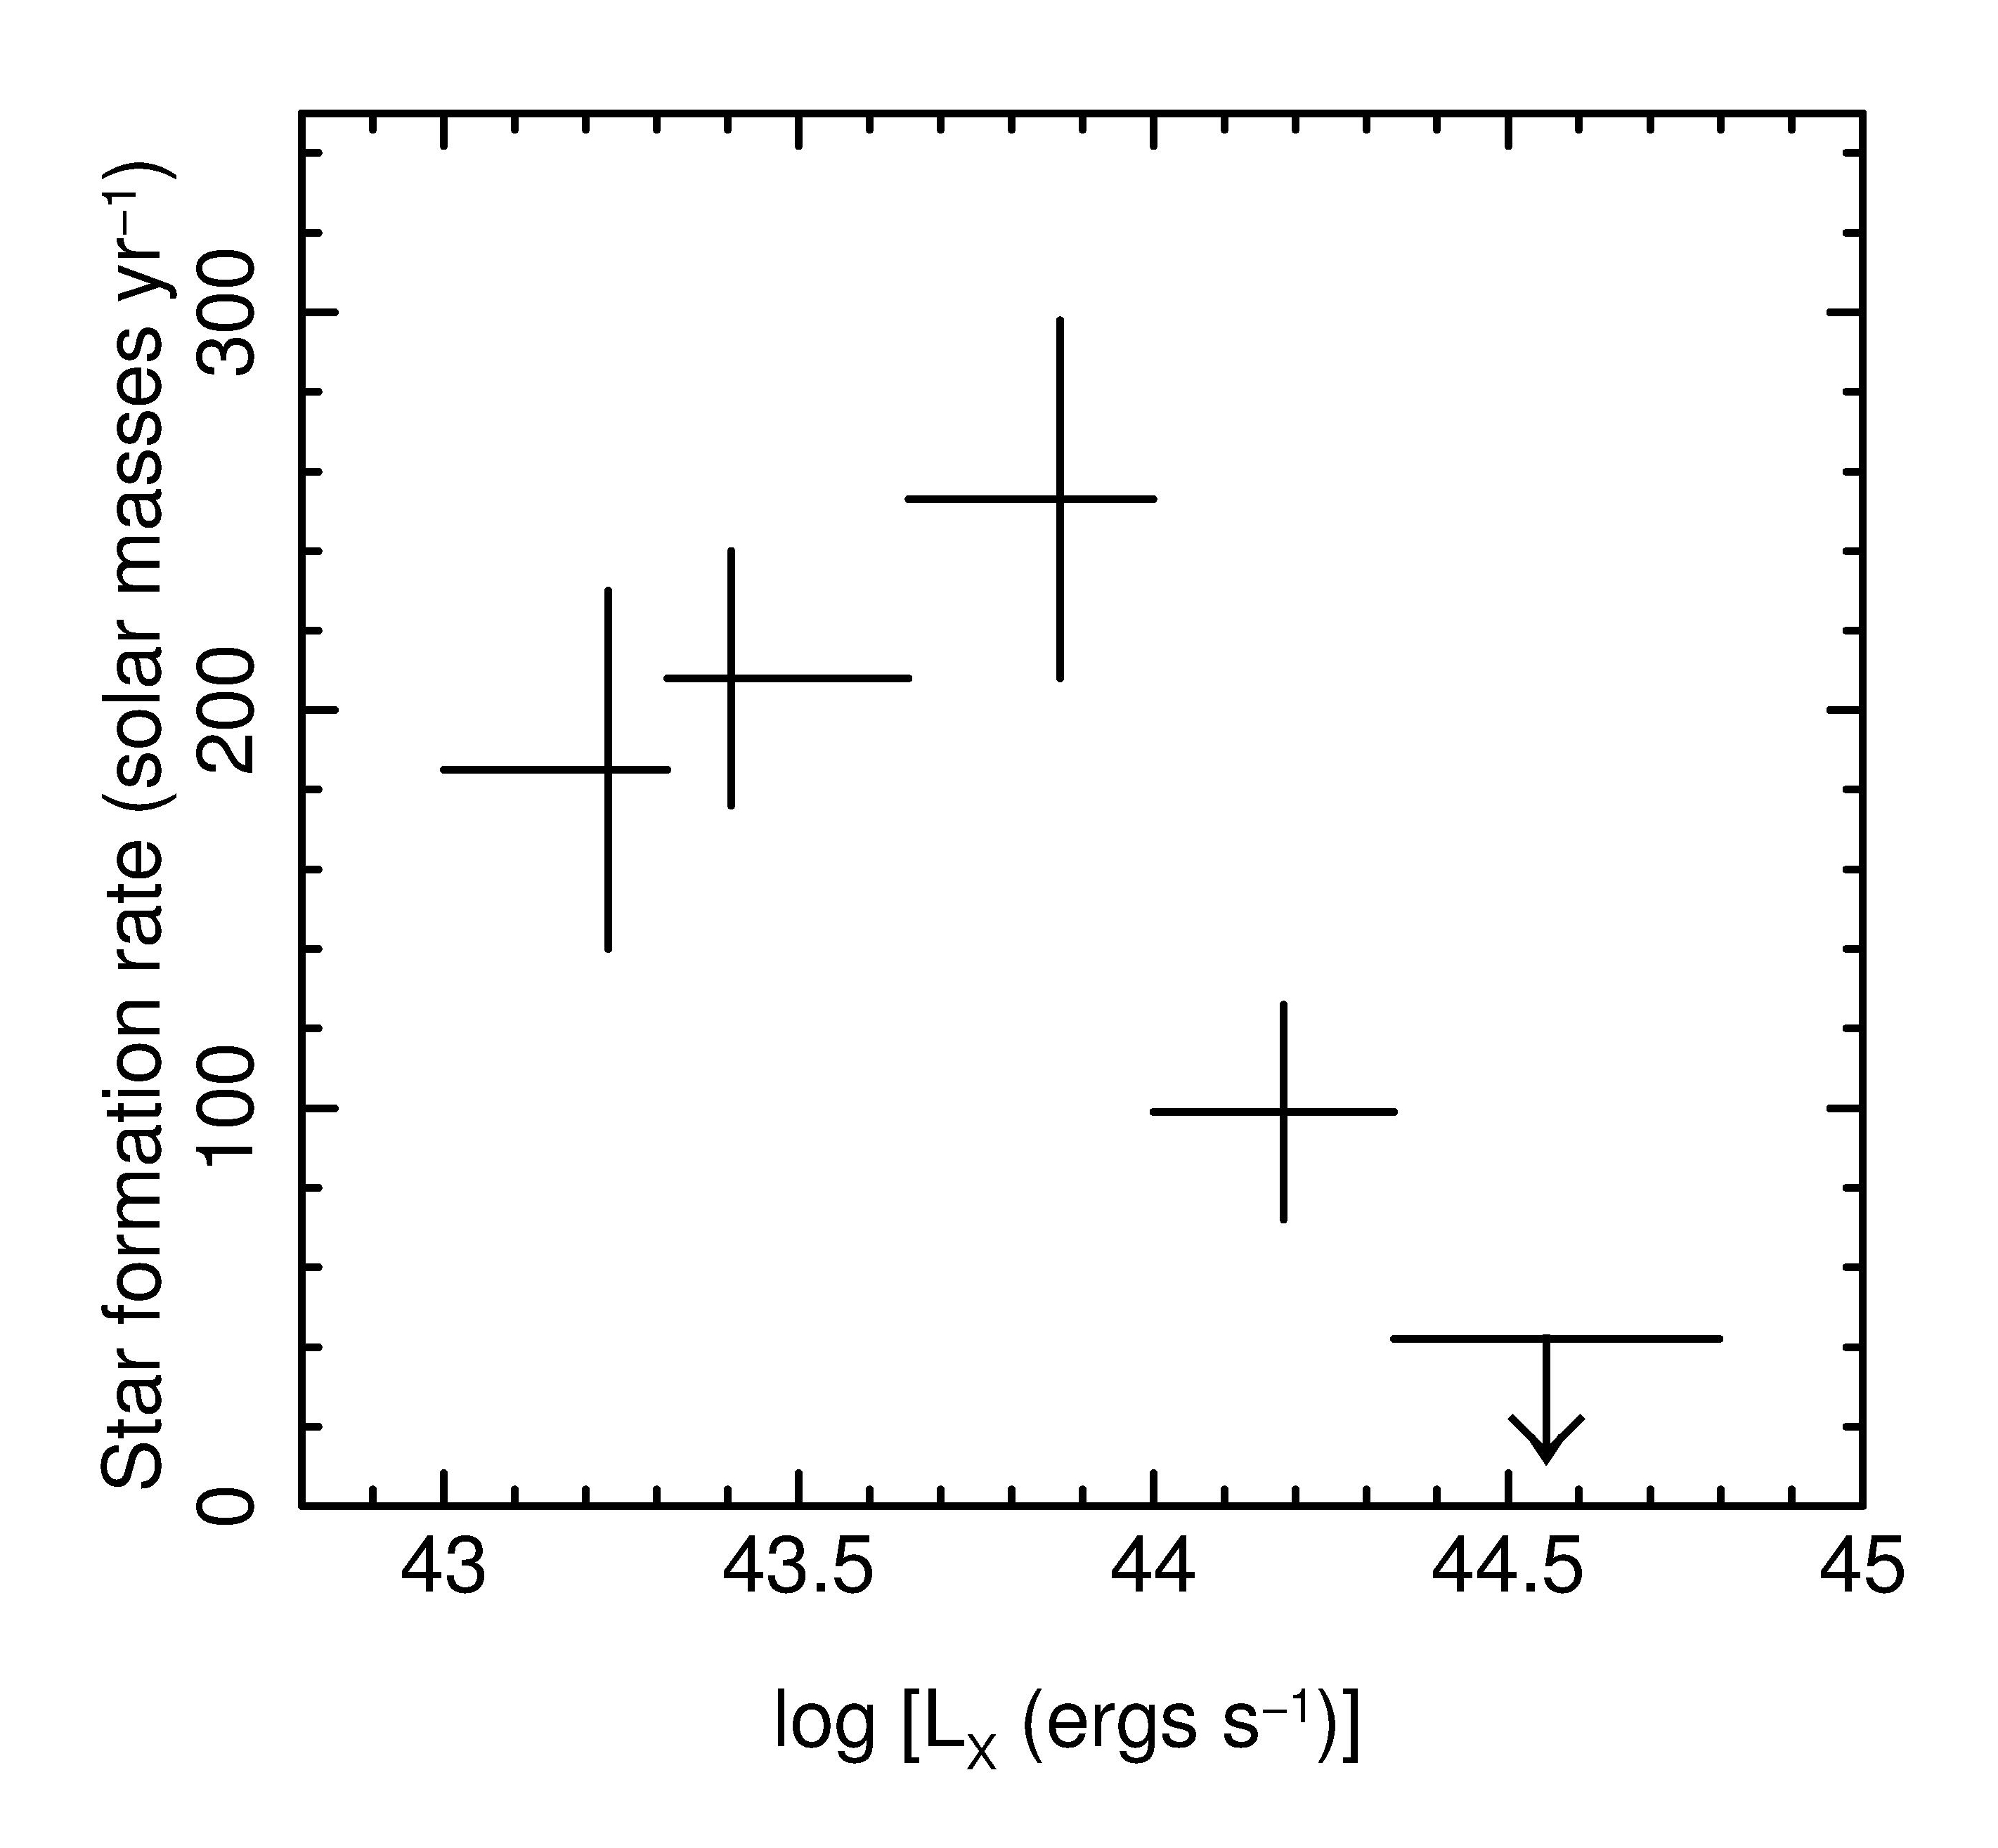 Star formation rate as a function of X-ray brightness for a sample of high-redshift galaxies. Copyright: Image courtesy of Mathew Page, Mullard Space Science Laboratory, UK